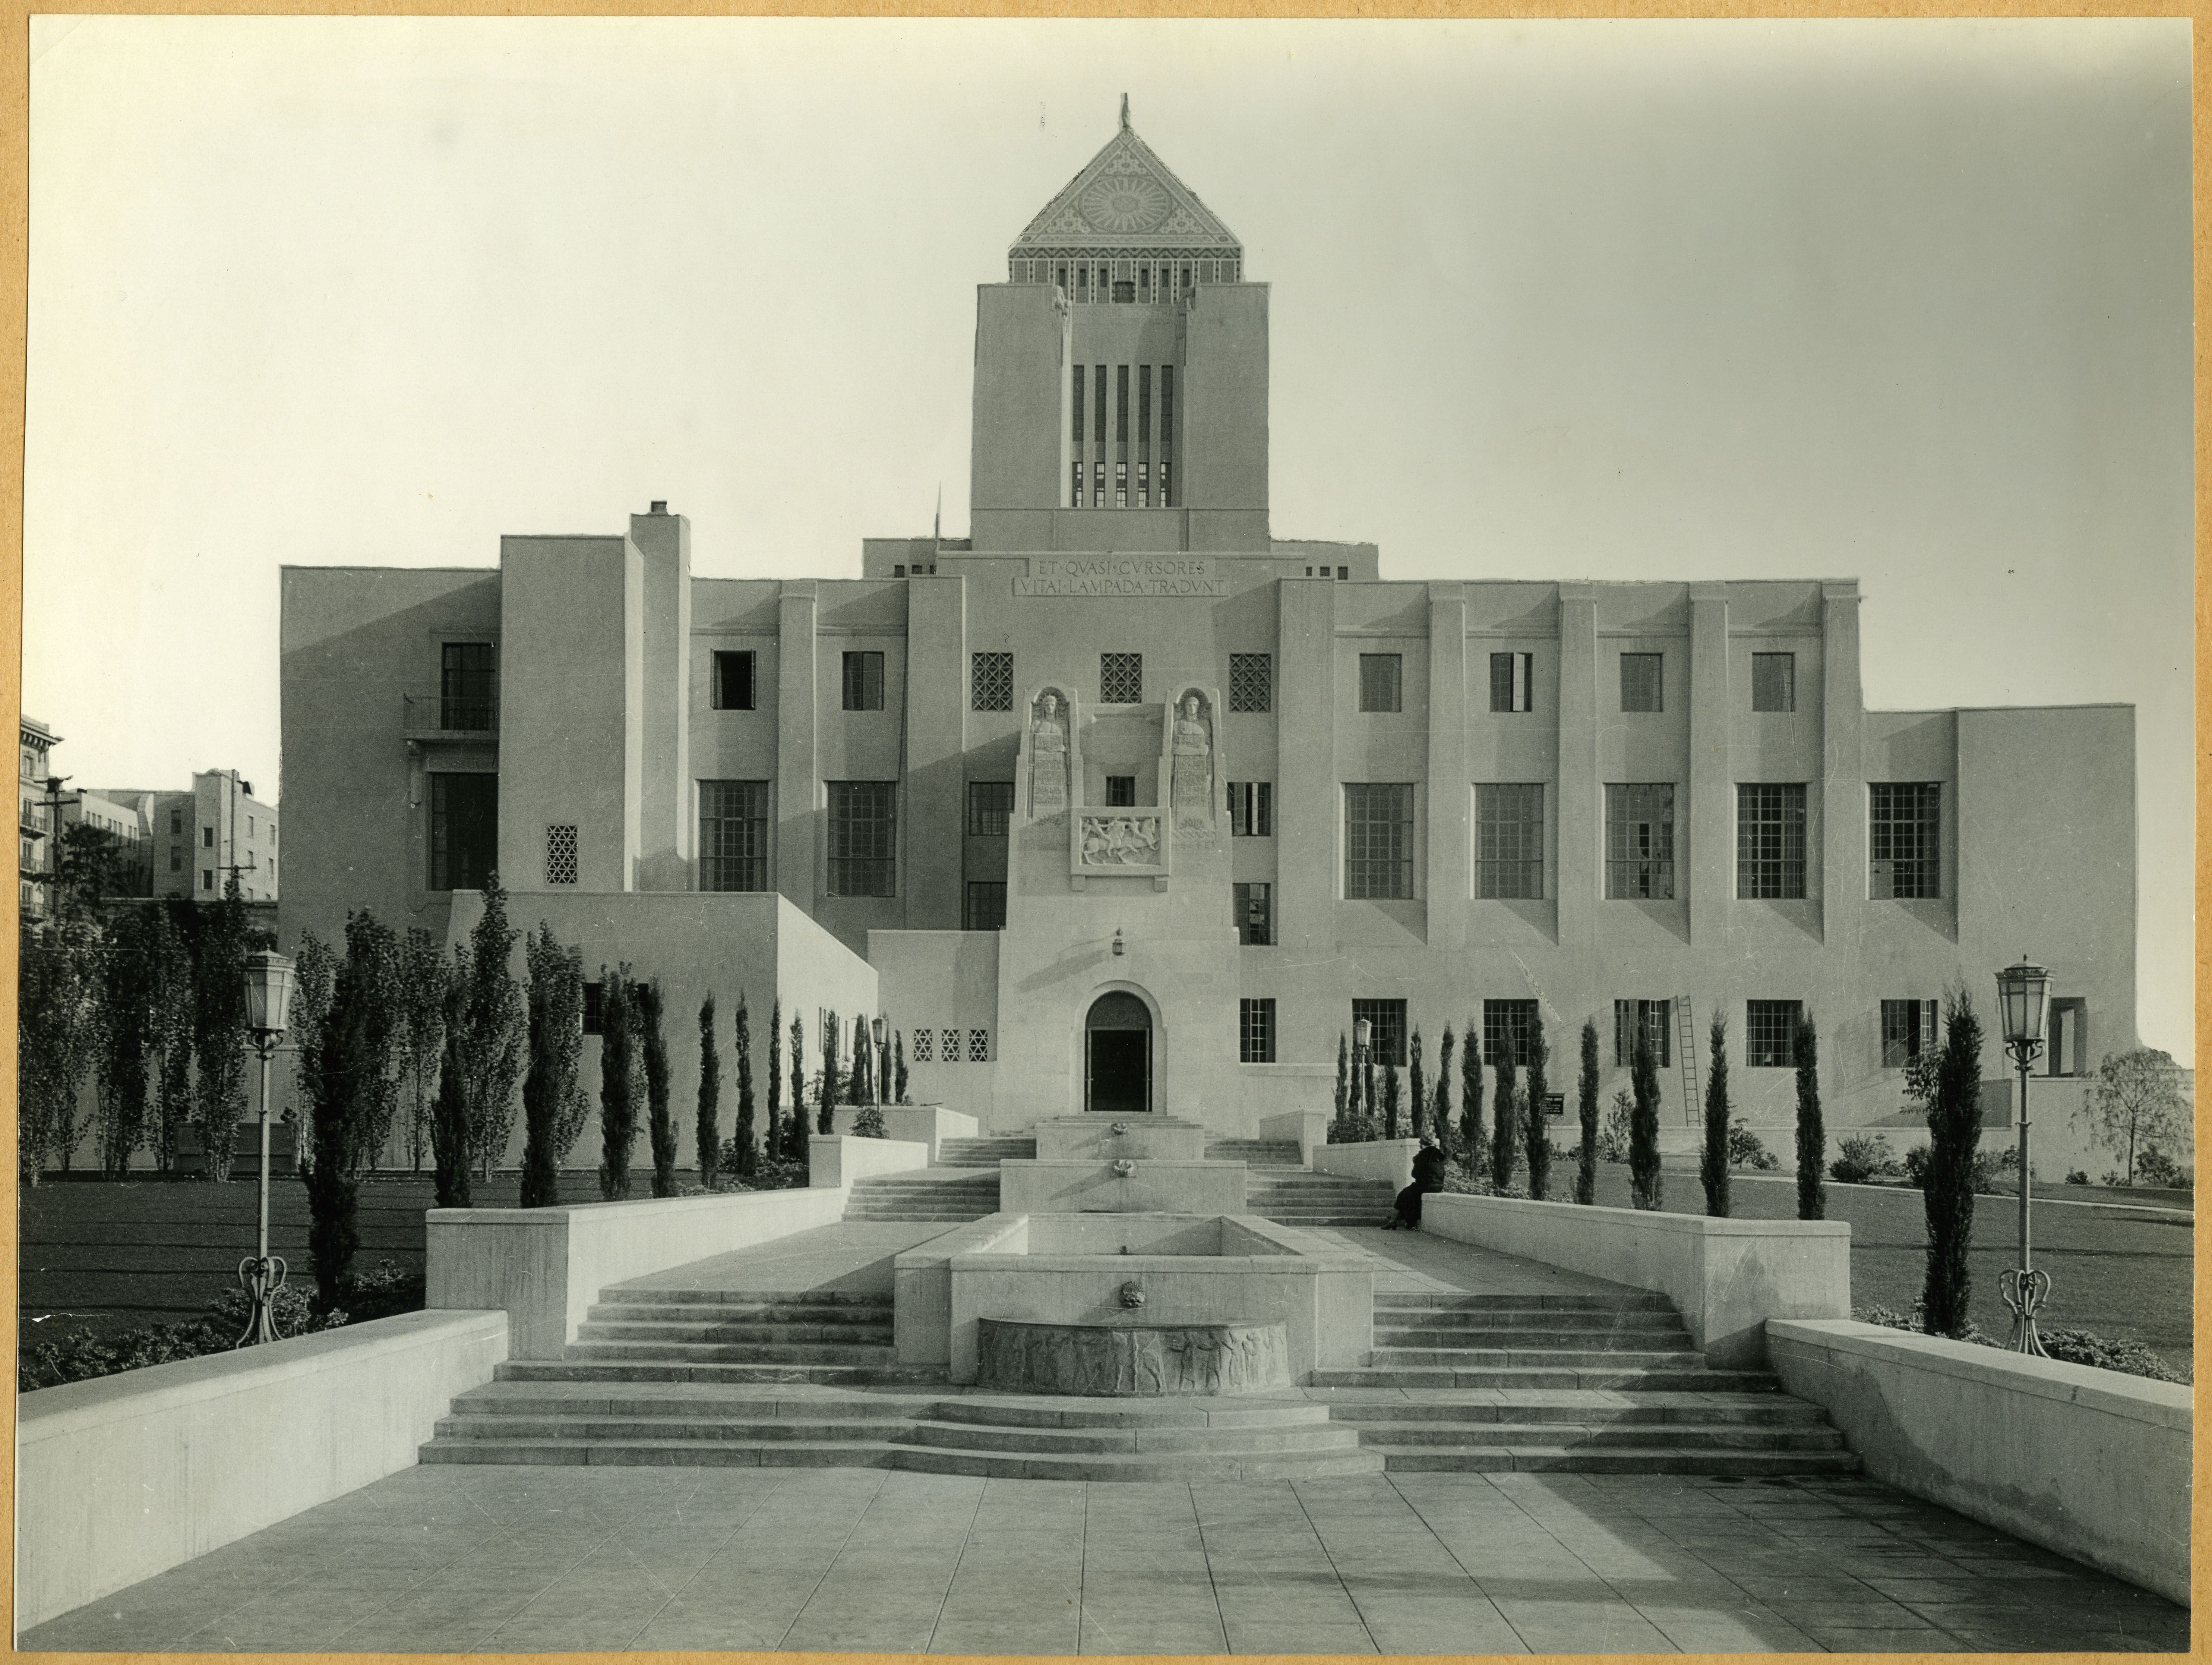 1926 July 15 The Los Angeles Central Library Originally Designed By Bertram Goodhue And Co Mediterranean Revival Style Central Library Mediterranean Revival